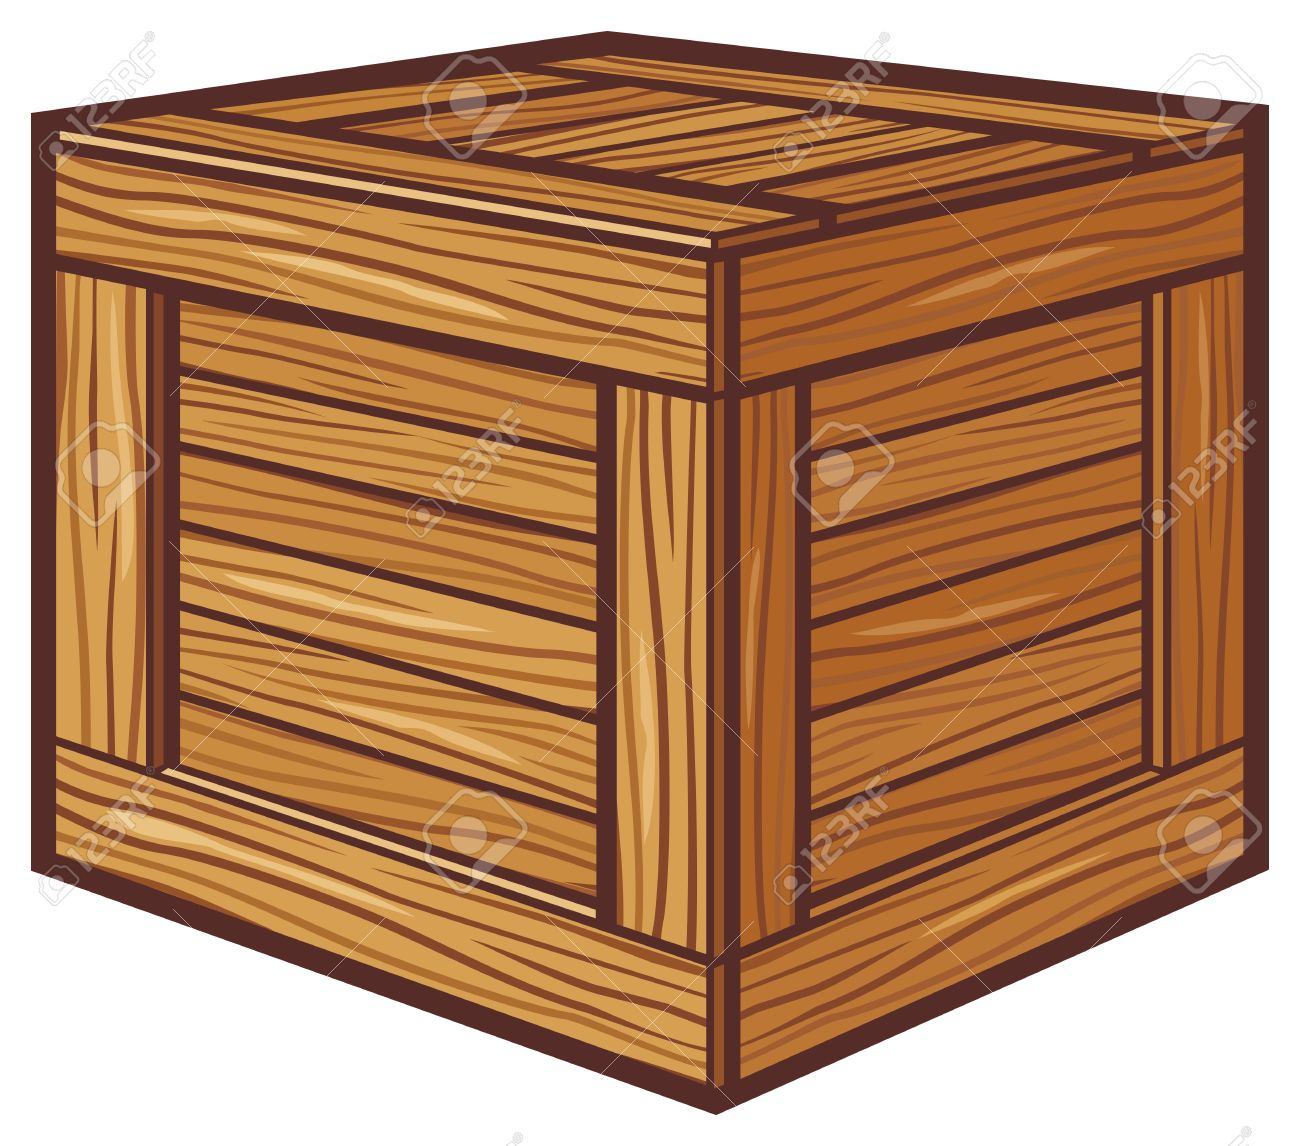 wooden box clipart. wooden box stock vector 24058863 clipart n